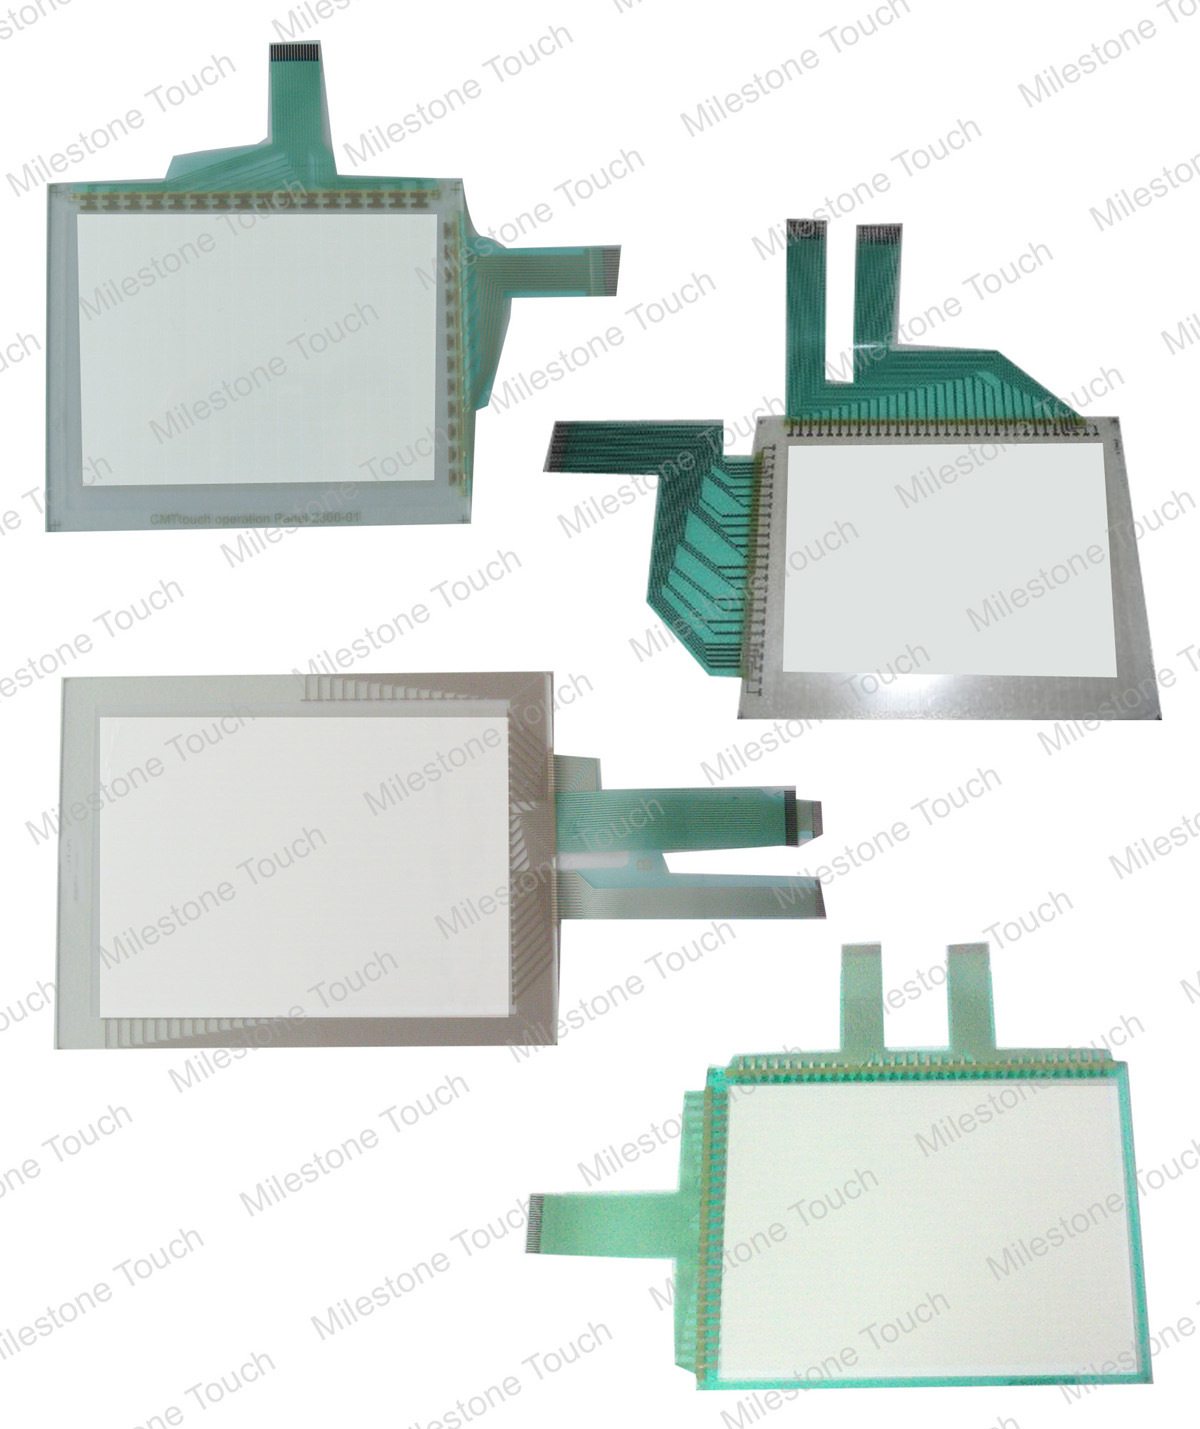 Pfxgp4601tadc / Pfxgp4601tma / Pfxgp4601tmd / Pfxgp4603tad Touch Screen Panel Membrane Glass for PRO-Face